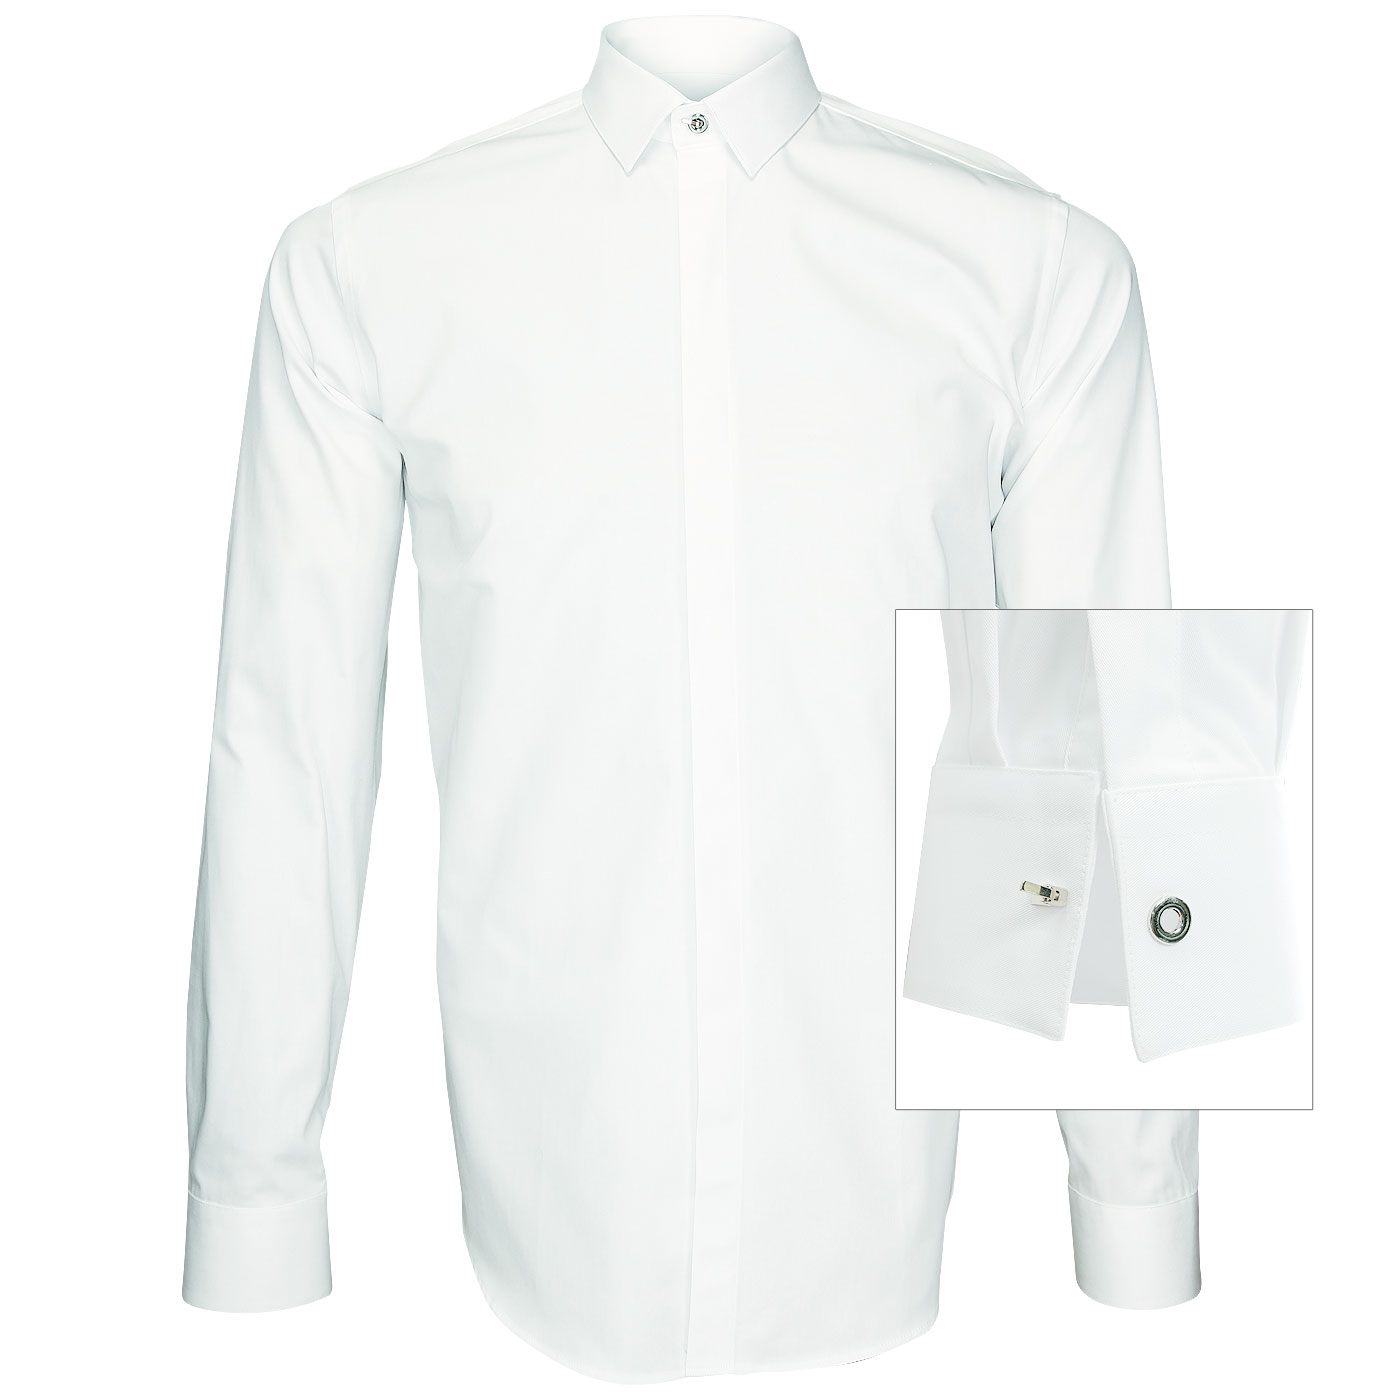 Fashion French Cuffs Shirt